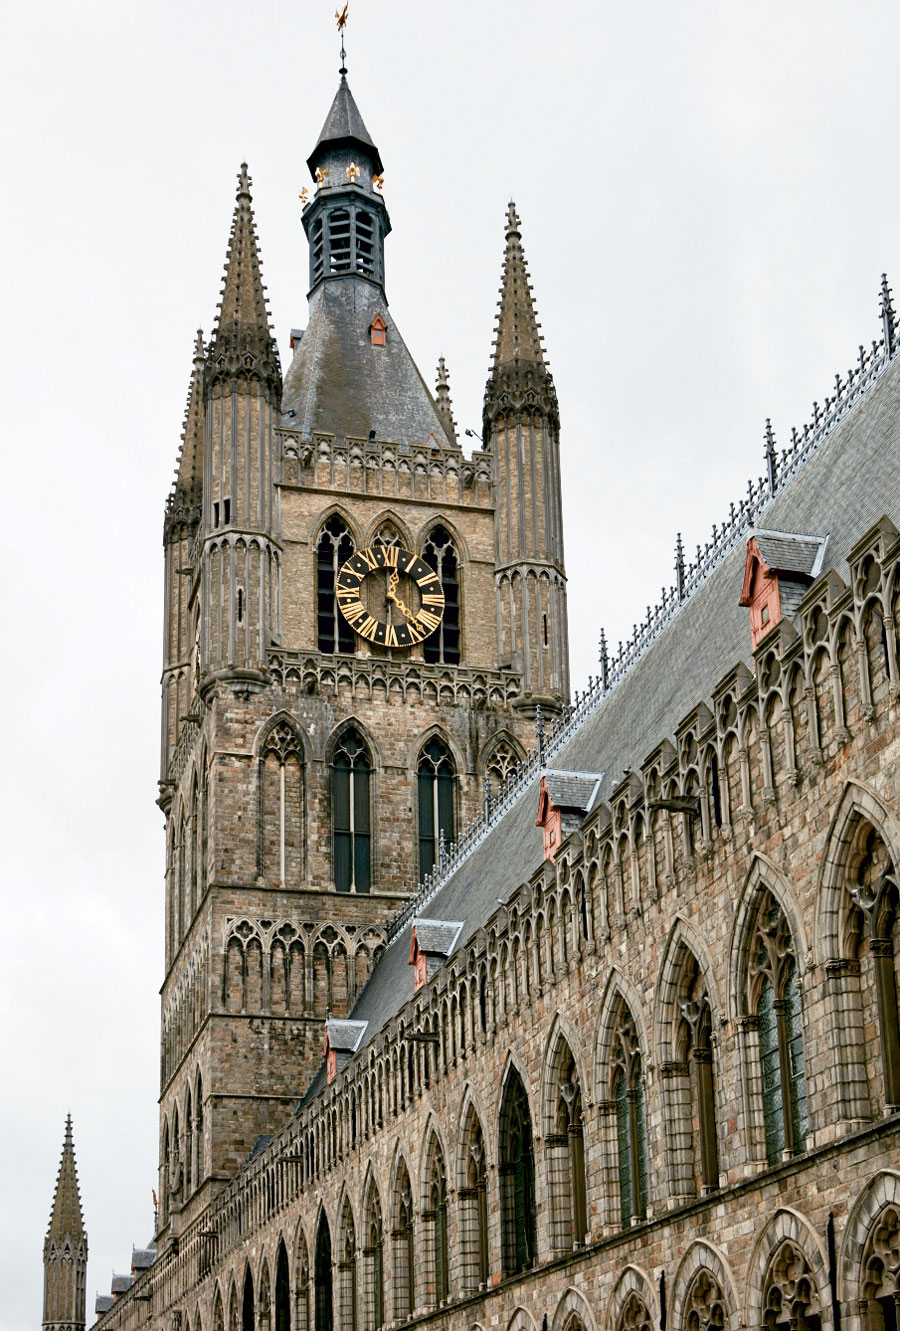 View of Clock tower